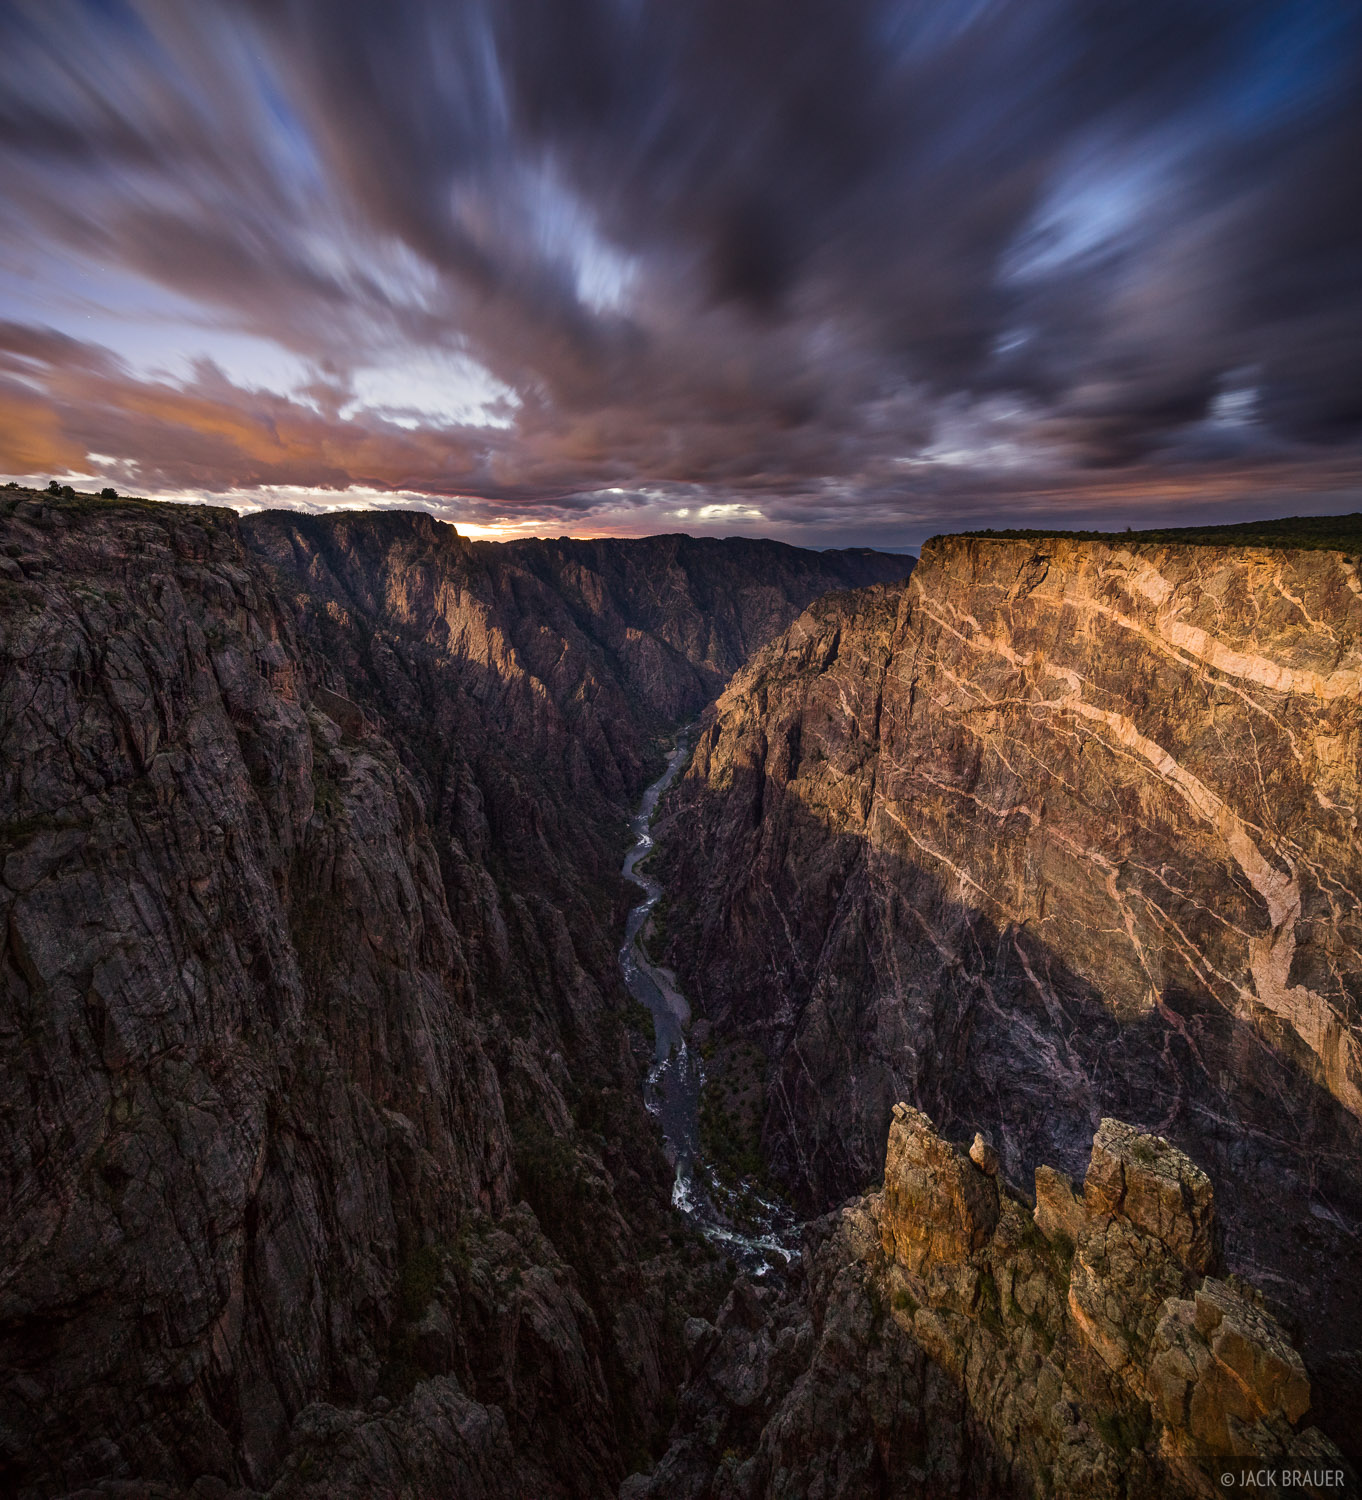 Black Canyon of the Gunnison, Cedar Point, moonlight, Gunnison River, photo